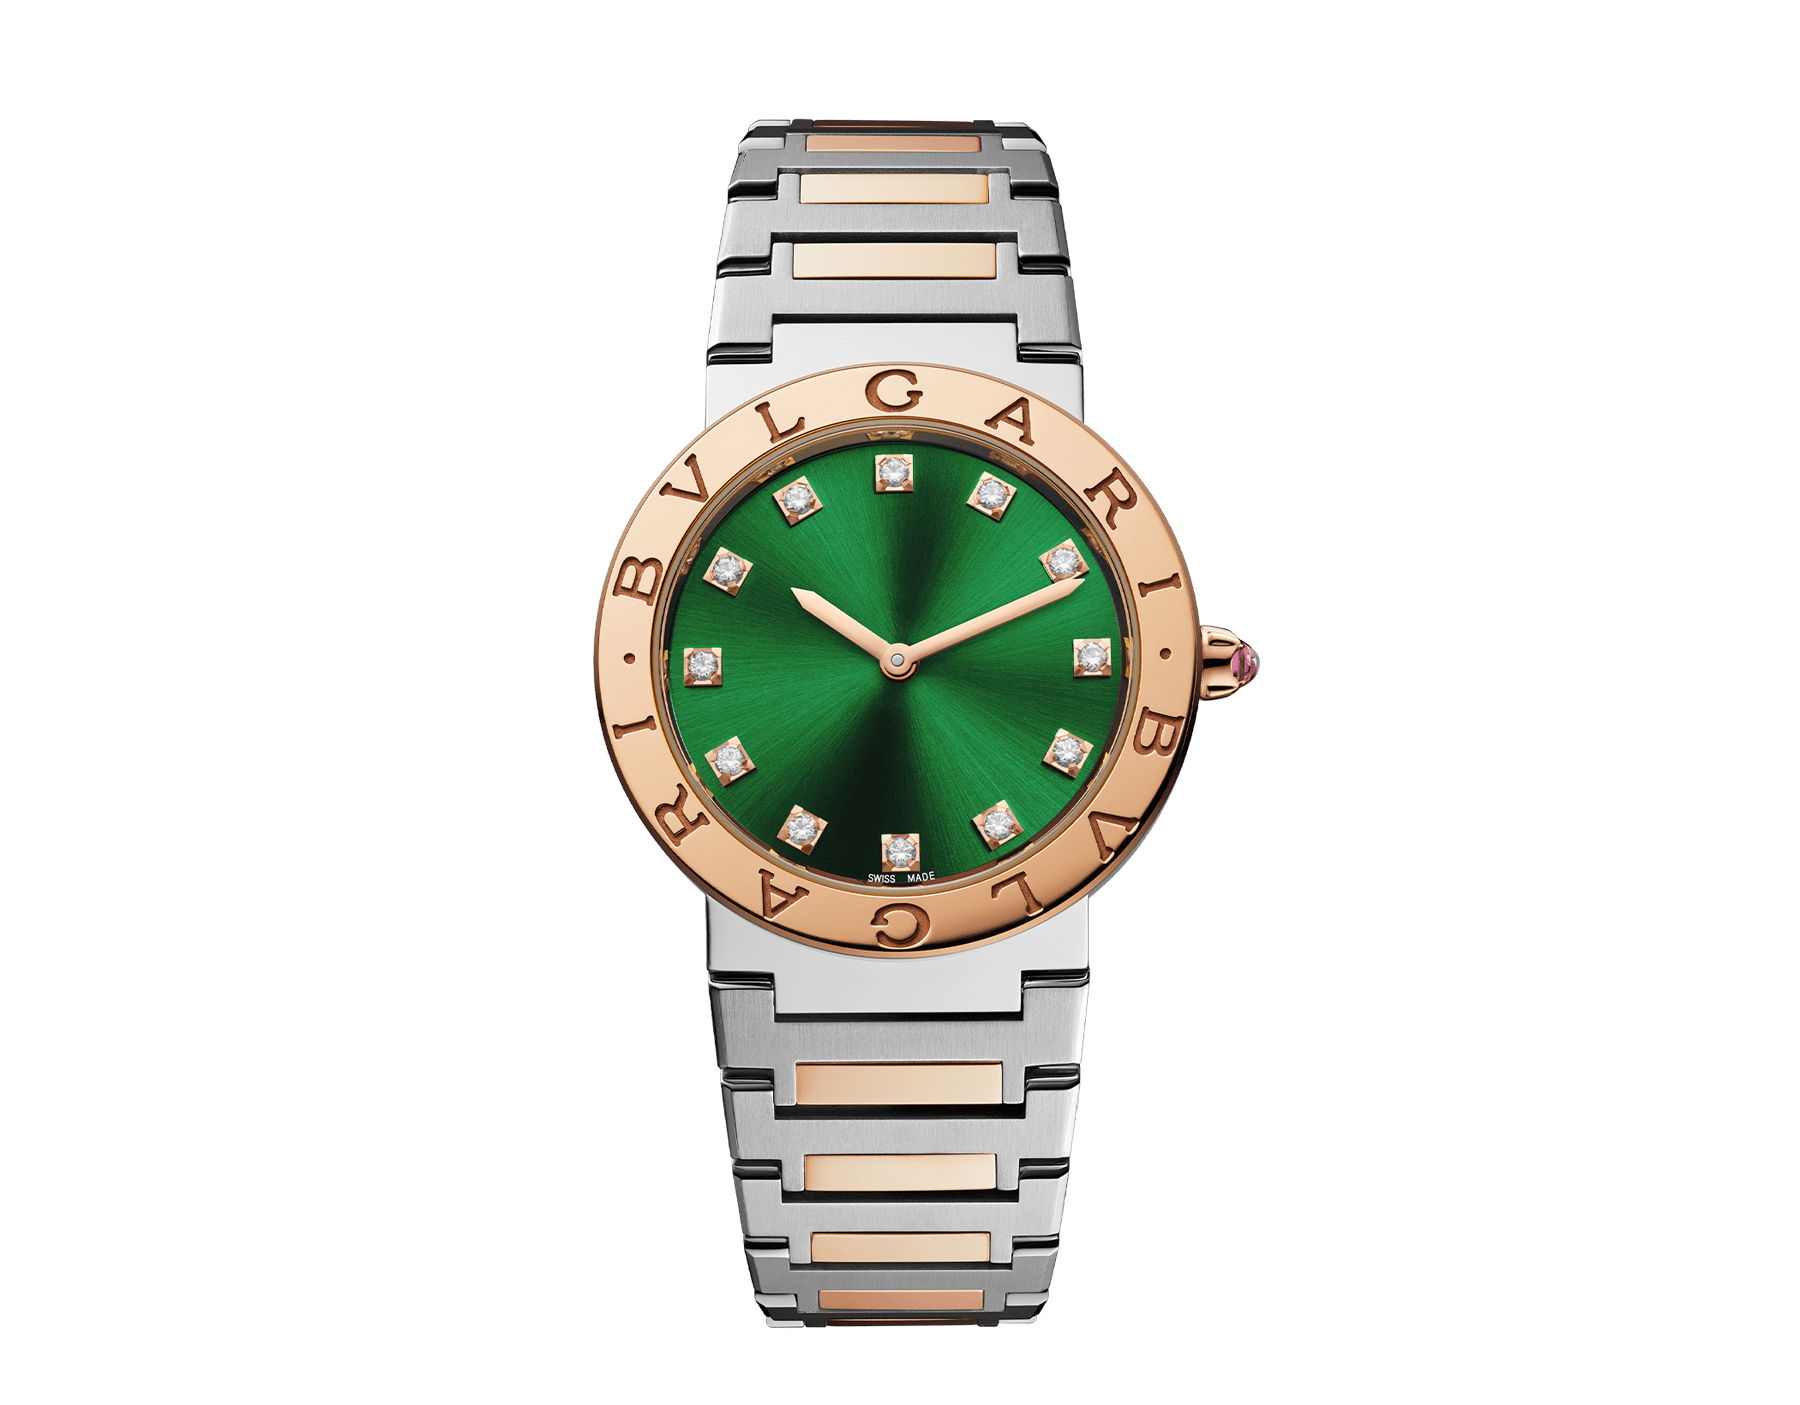 BVLGARI BVLGARI watch in 18 kt rose gold and stainless steel case and bracelet, 18 kt rose gold bezel engraved with double logo, green satiné soleil lacquered dial and diamond indexes 103202 image 1